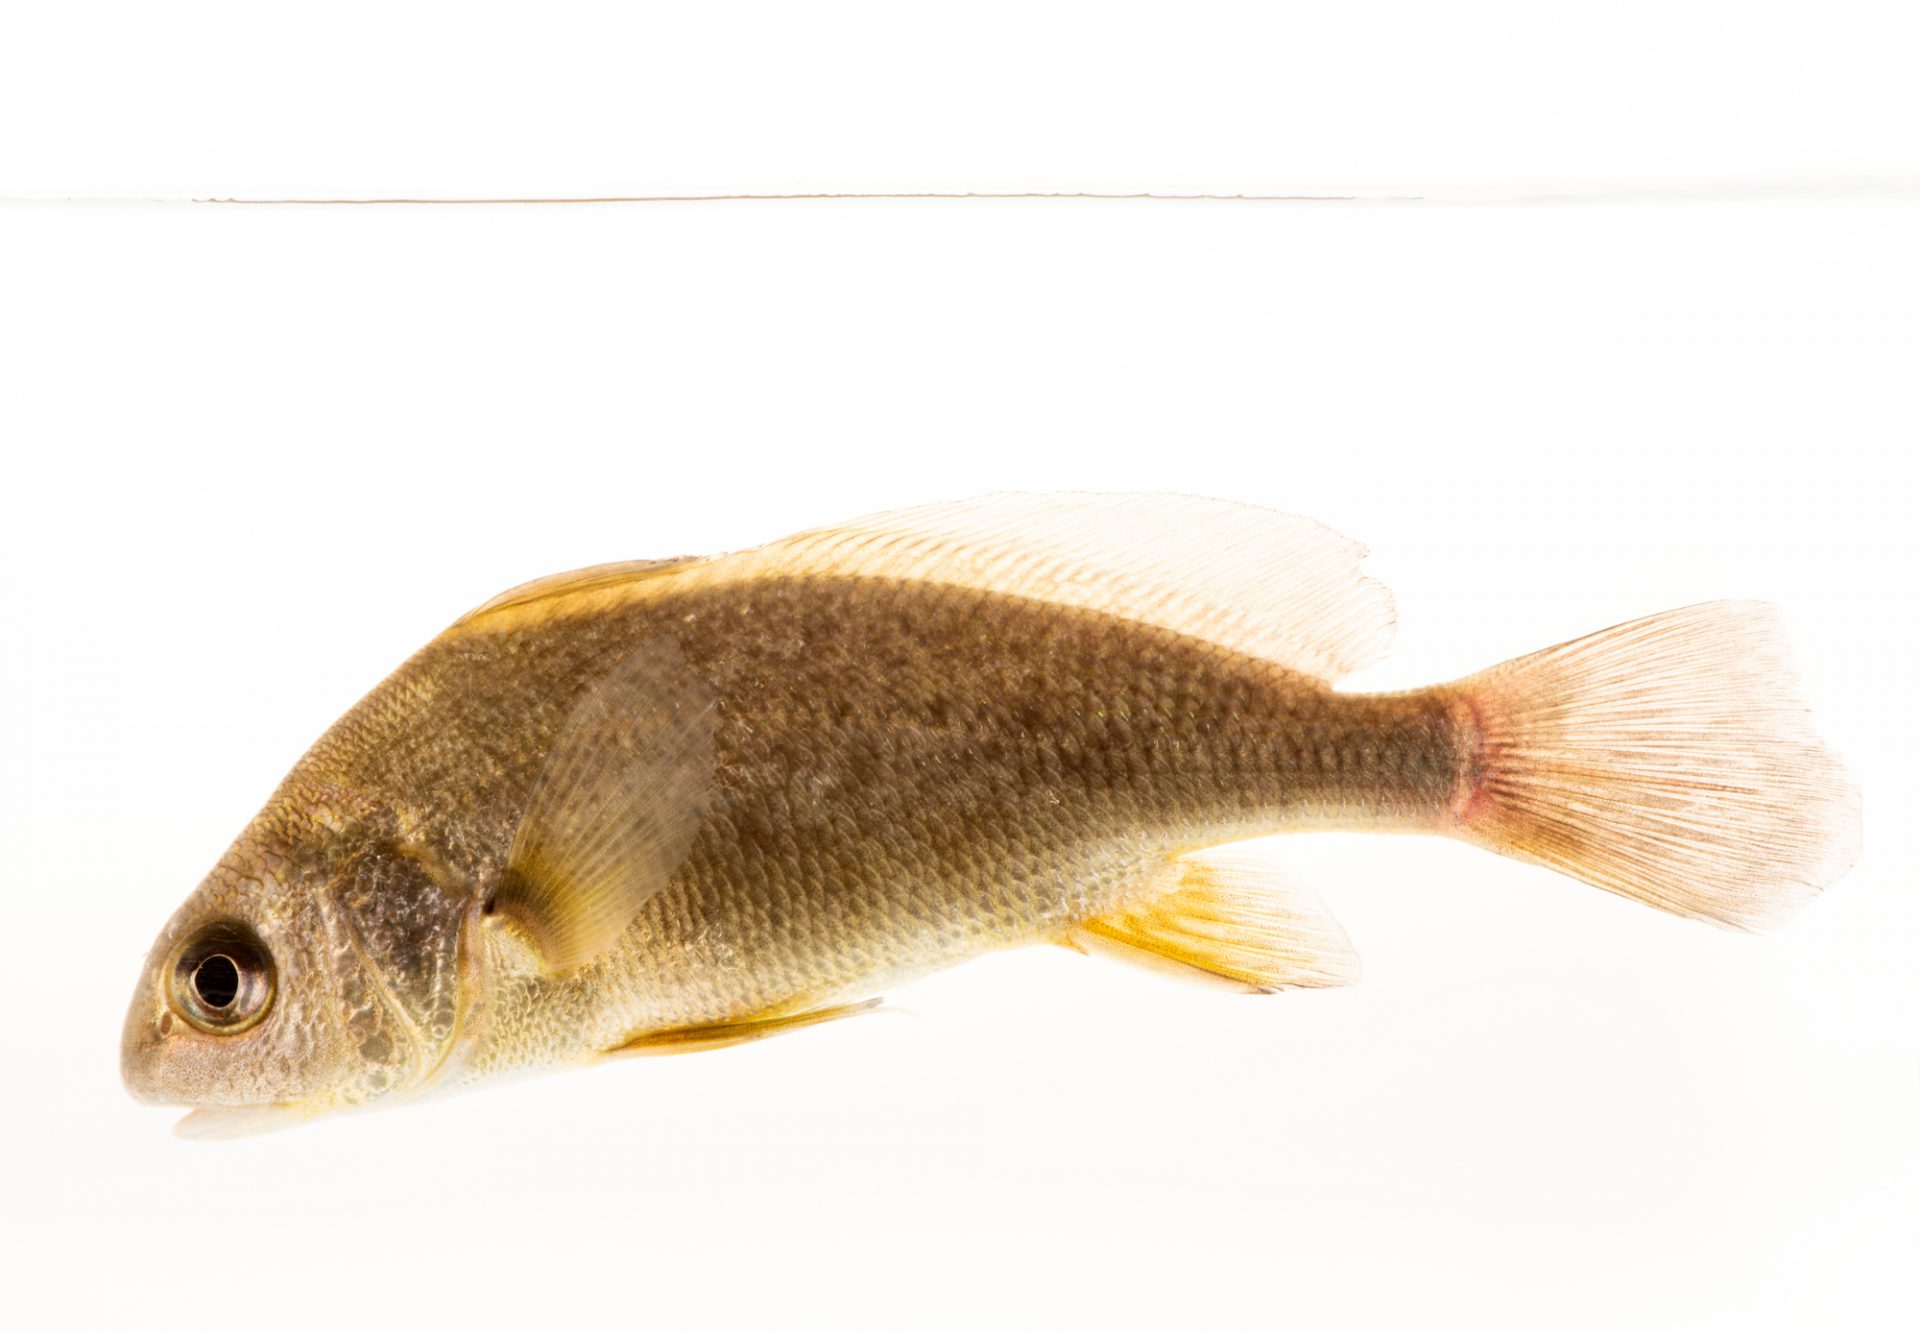 Photo: Freshwater drum (Aplodinotus grunniens) at the Minnesota Department of Natural Resources Center for Aquatic Mollusk Programs.